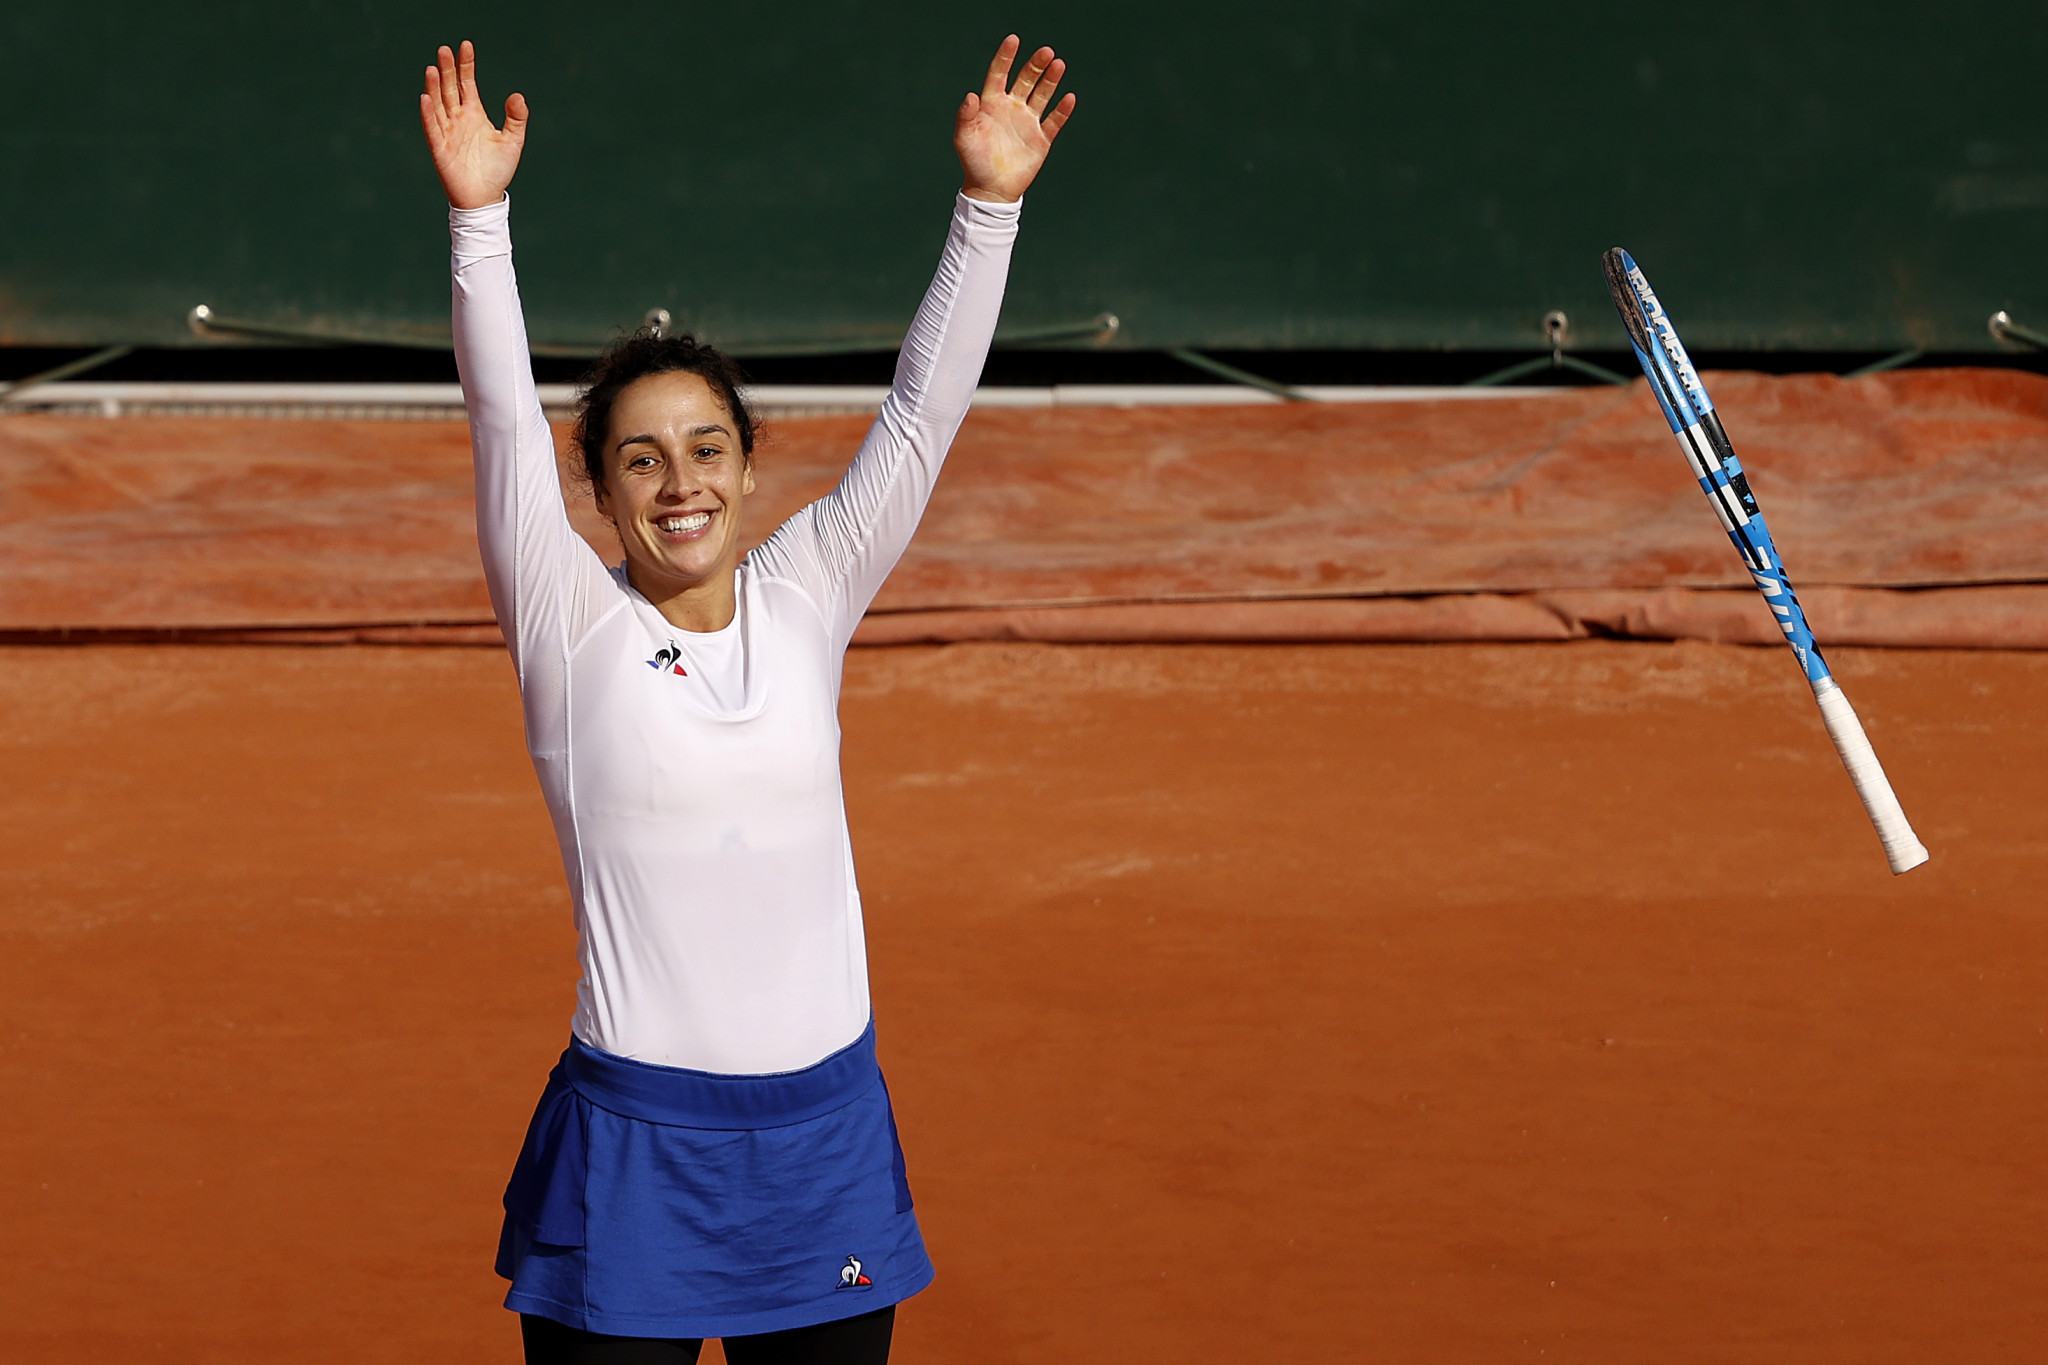 Italy's Martina Trevisan puts her arms up in celebration after knocking out fifth seed Kiki Bertens of the Netherlands ©Getty Images